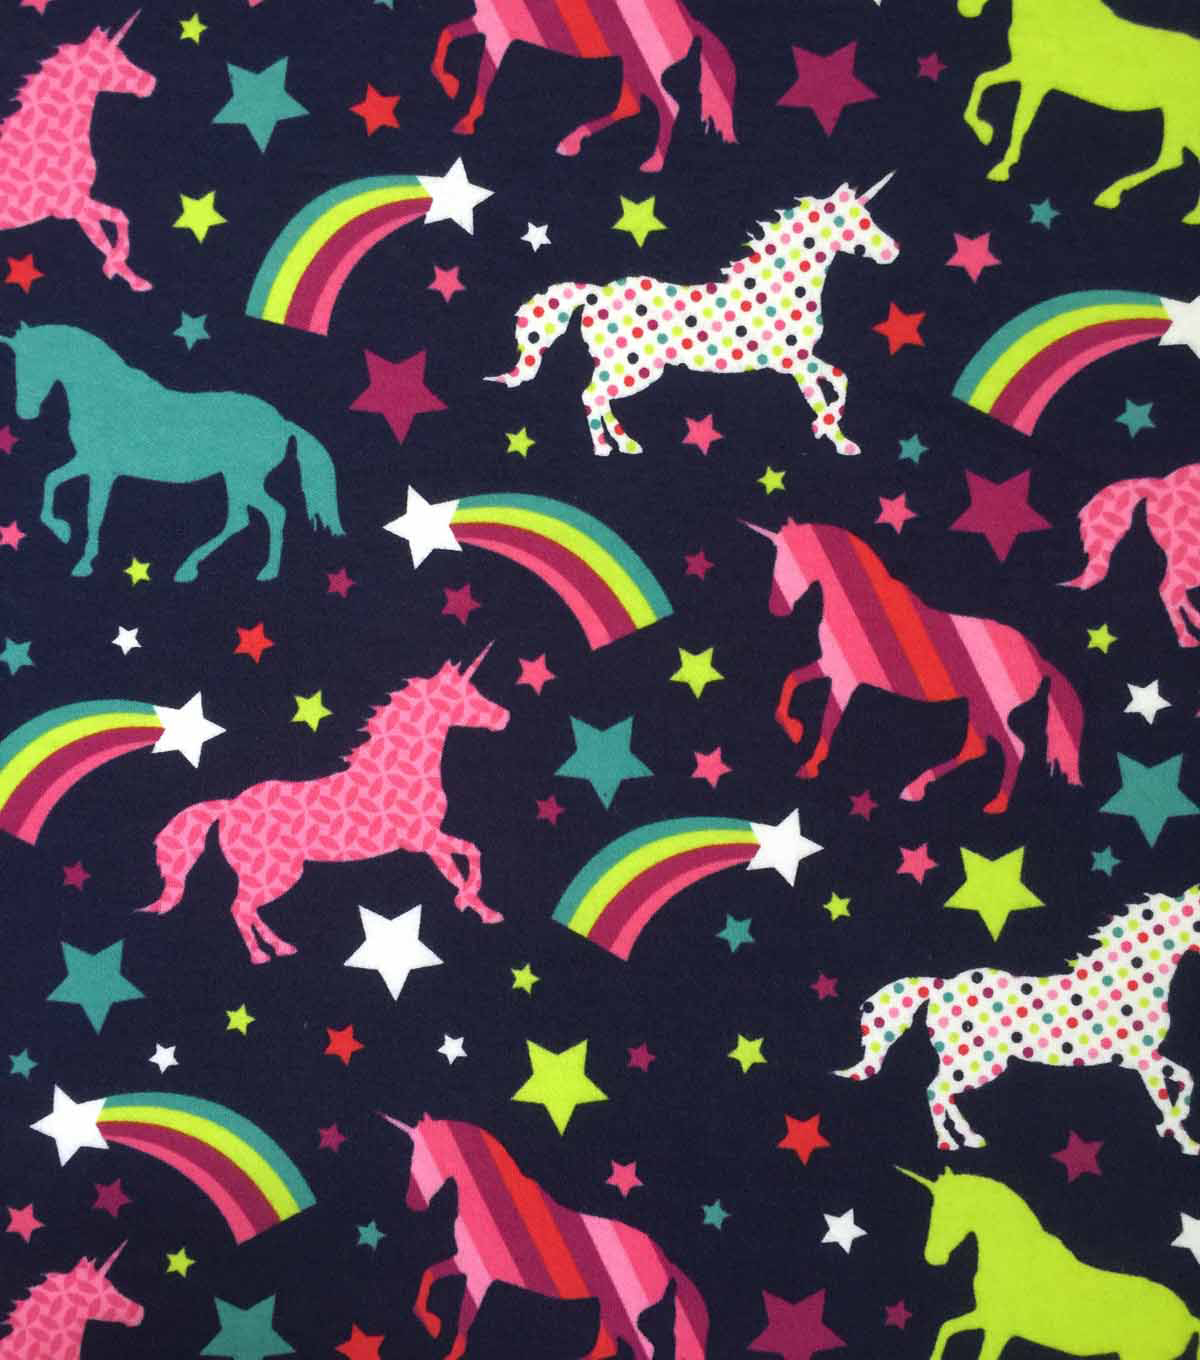 73334caf028 Doodles Cotton Interlock Knit Fabric-Navy Rainbows   Unicorns